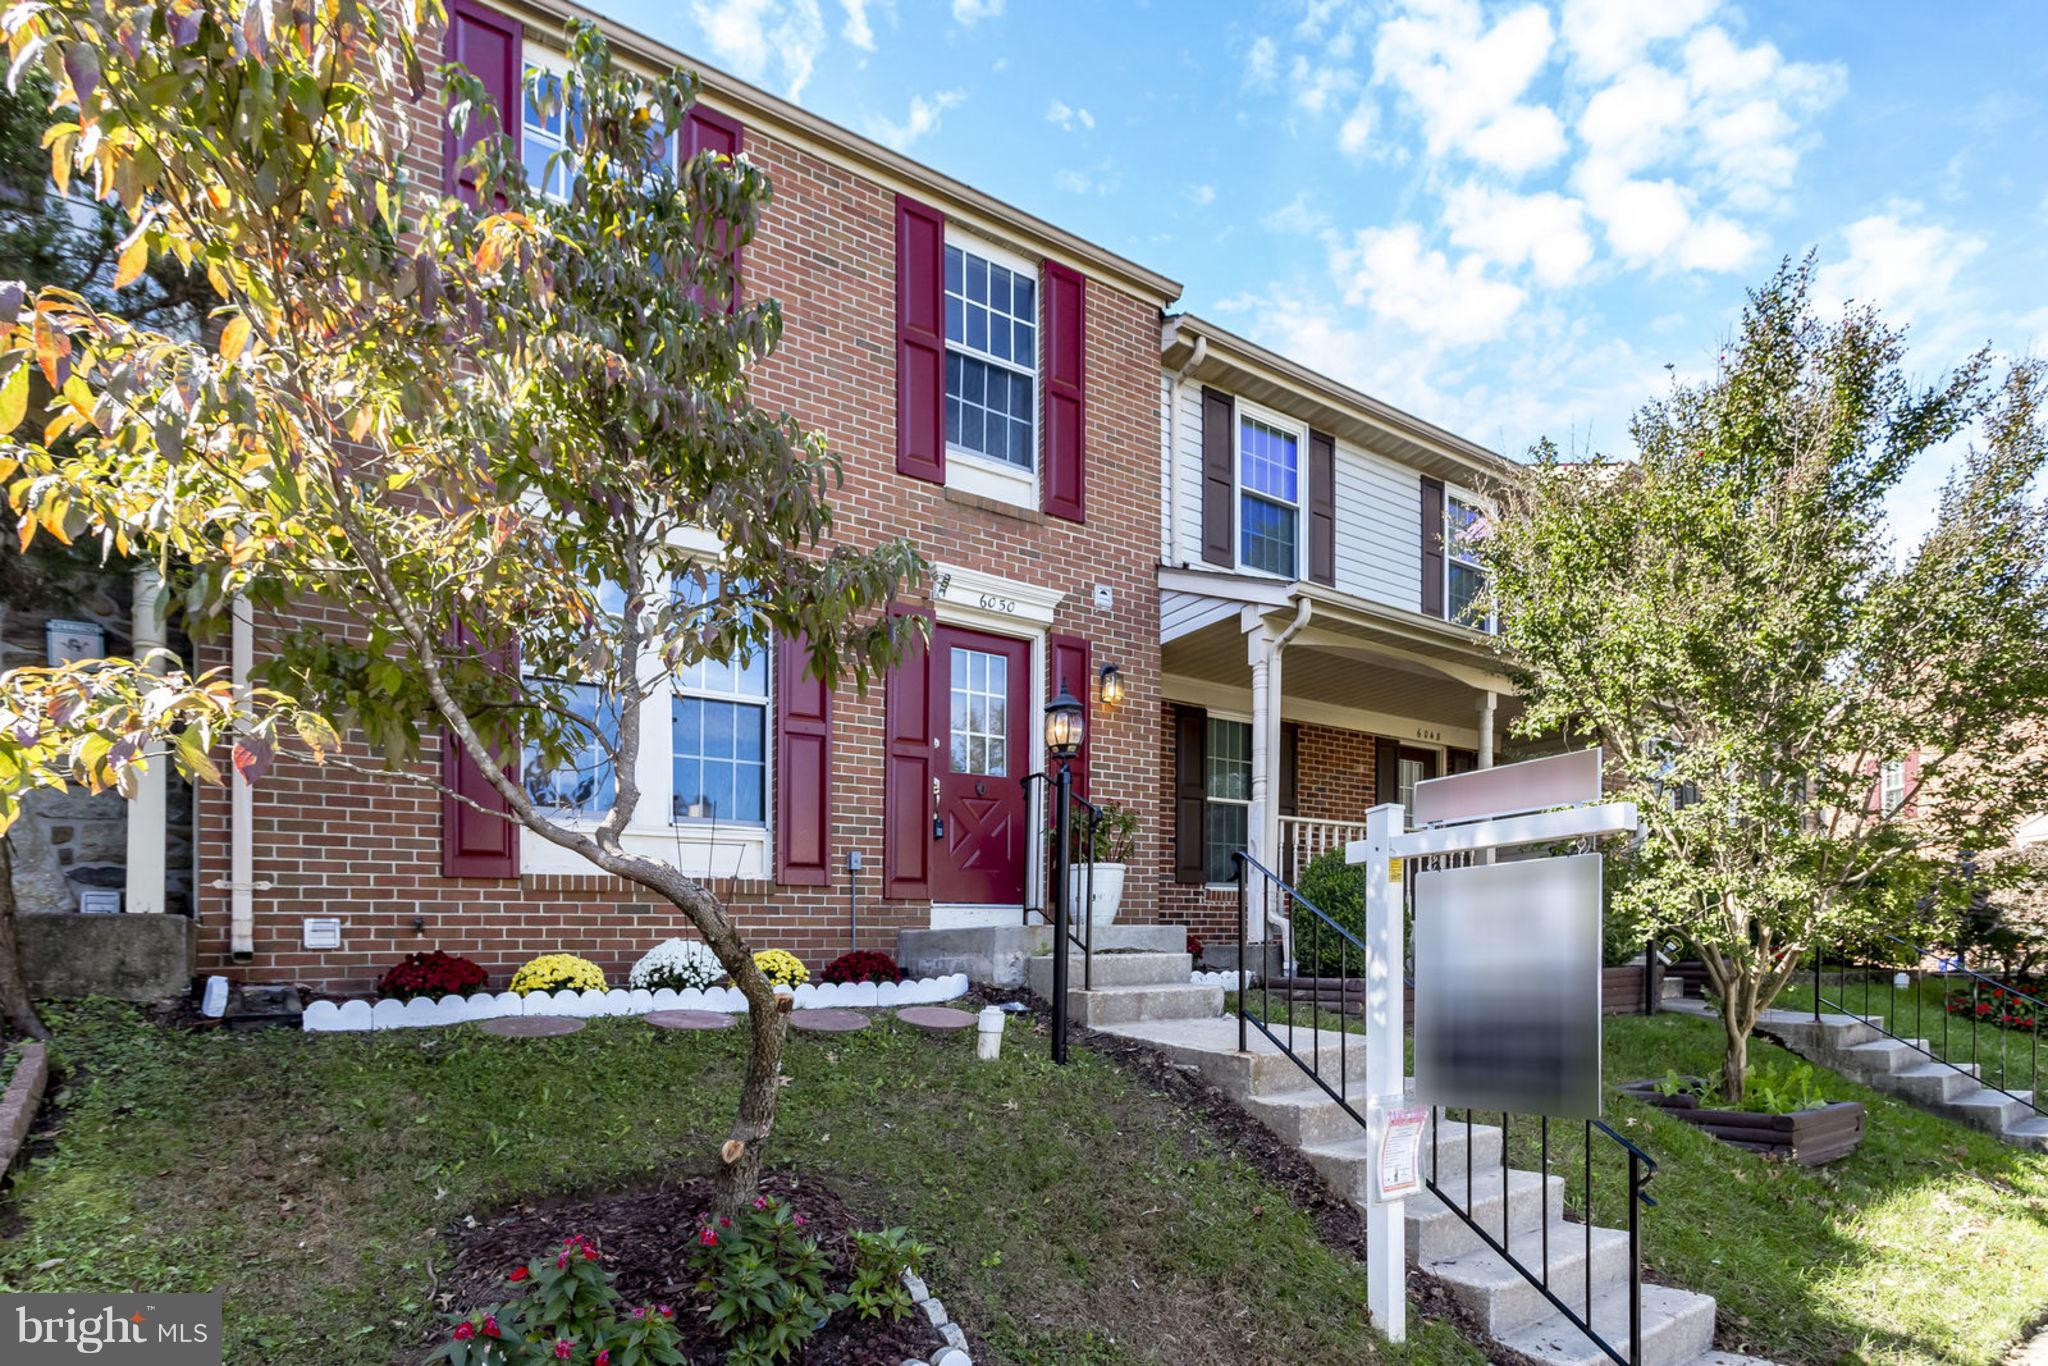 Just updated for you,  great location close to 495 beltway and to Washington DC.    A fully fenced backyard w/trees! NEW Gas Furnace.    NEW Kitchen has SS Appliances, Counters w/ glass backsplash, & hardwood floors,* NEW* Paint throughout,* NEW* Carpet,*   This model features 2 big Master BR's each with its own bath and a fully finished walkout basement w/ it's own Full Bath & Wood burning Fireplace.